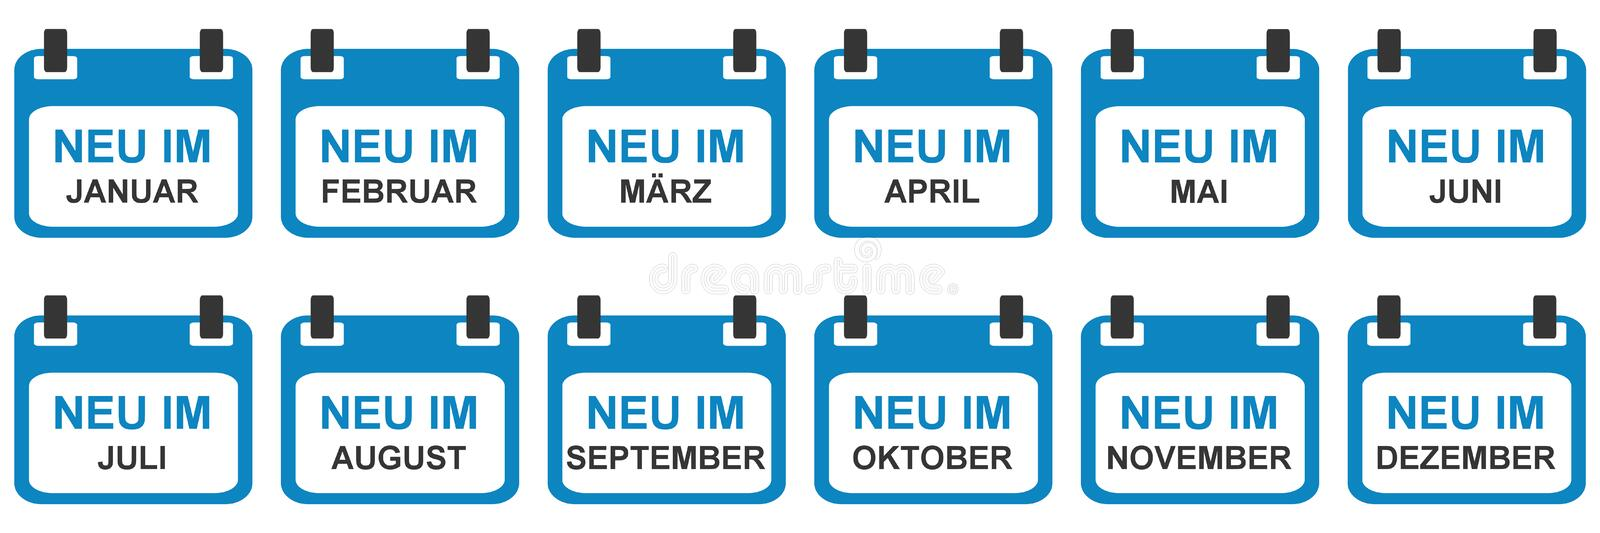 Calendar Icons: New in January - December in german language vector illustration